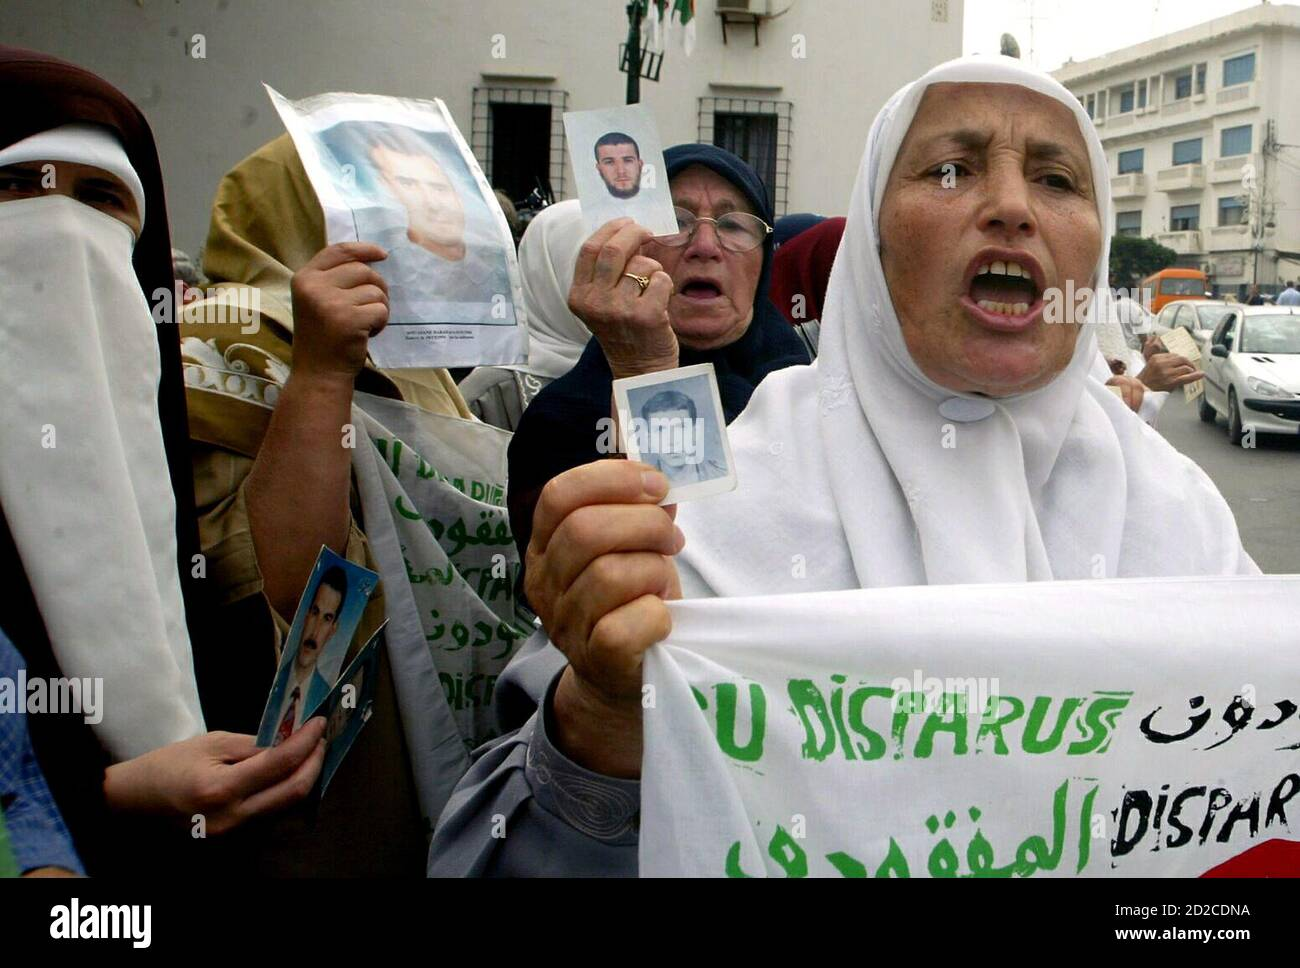 Algerian mothers hold up photographs of their disappeared loved ones during a protest outside the office of a human rights group in Algiers September 28, 2005. For a decade, dozens of mothers have held sit-ins once a week outside the office demanding the return of their loved ones or information about their fates. Algeria's national referendum, which will be held on September 29 aims at ending more than a decade of conflict which will help Islamists reach their goal of forming a purist Islamic republic ,an influential former leading militant said on Monday. REUTERS/Louafi Larbi Stock Photo